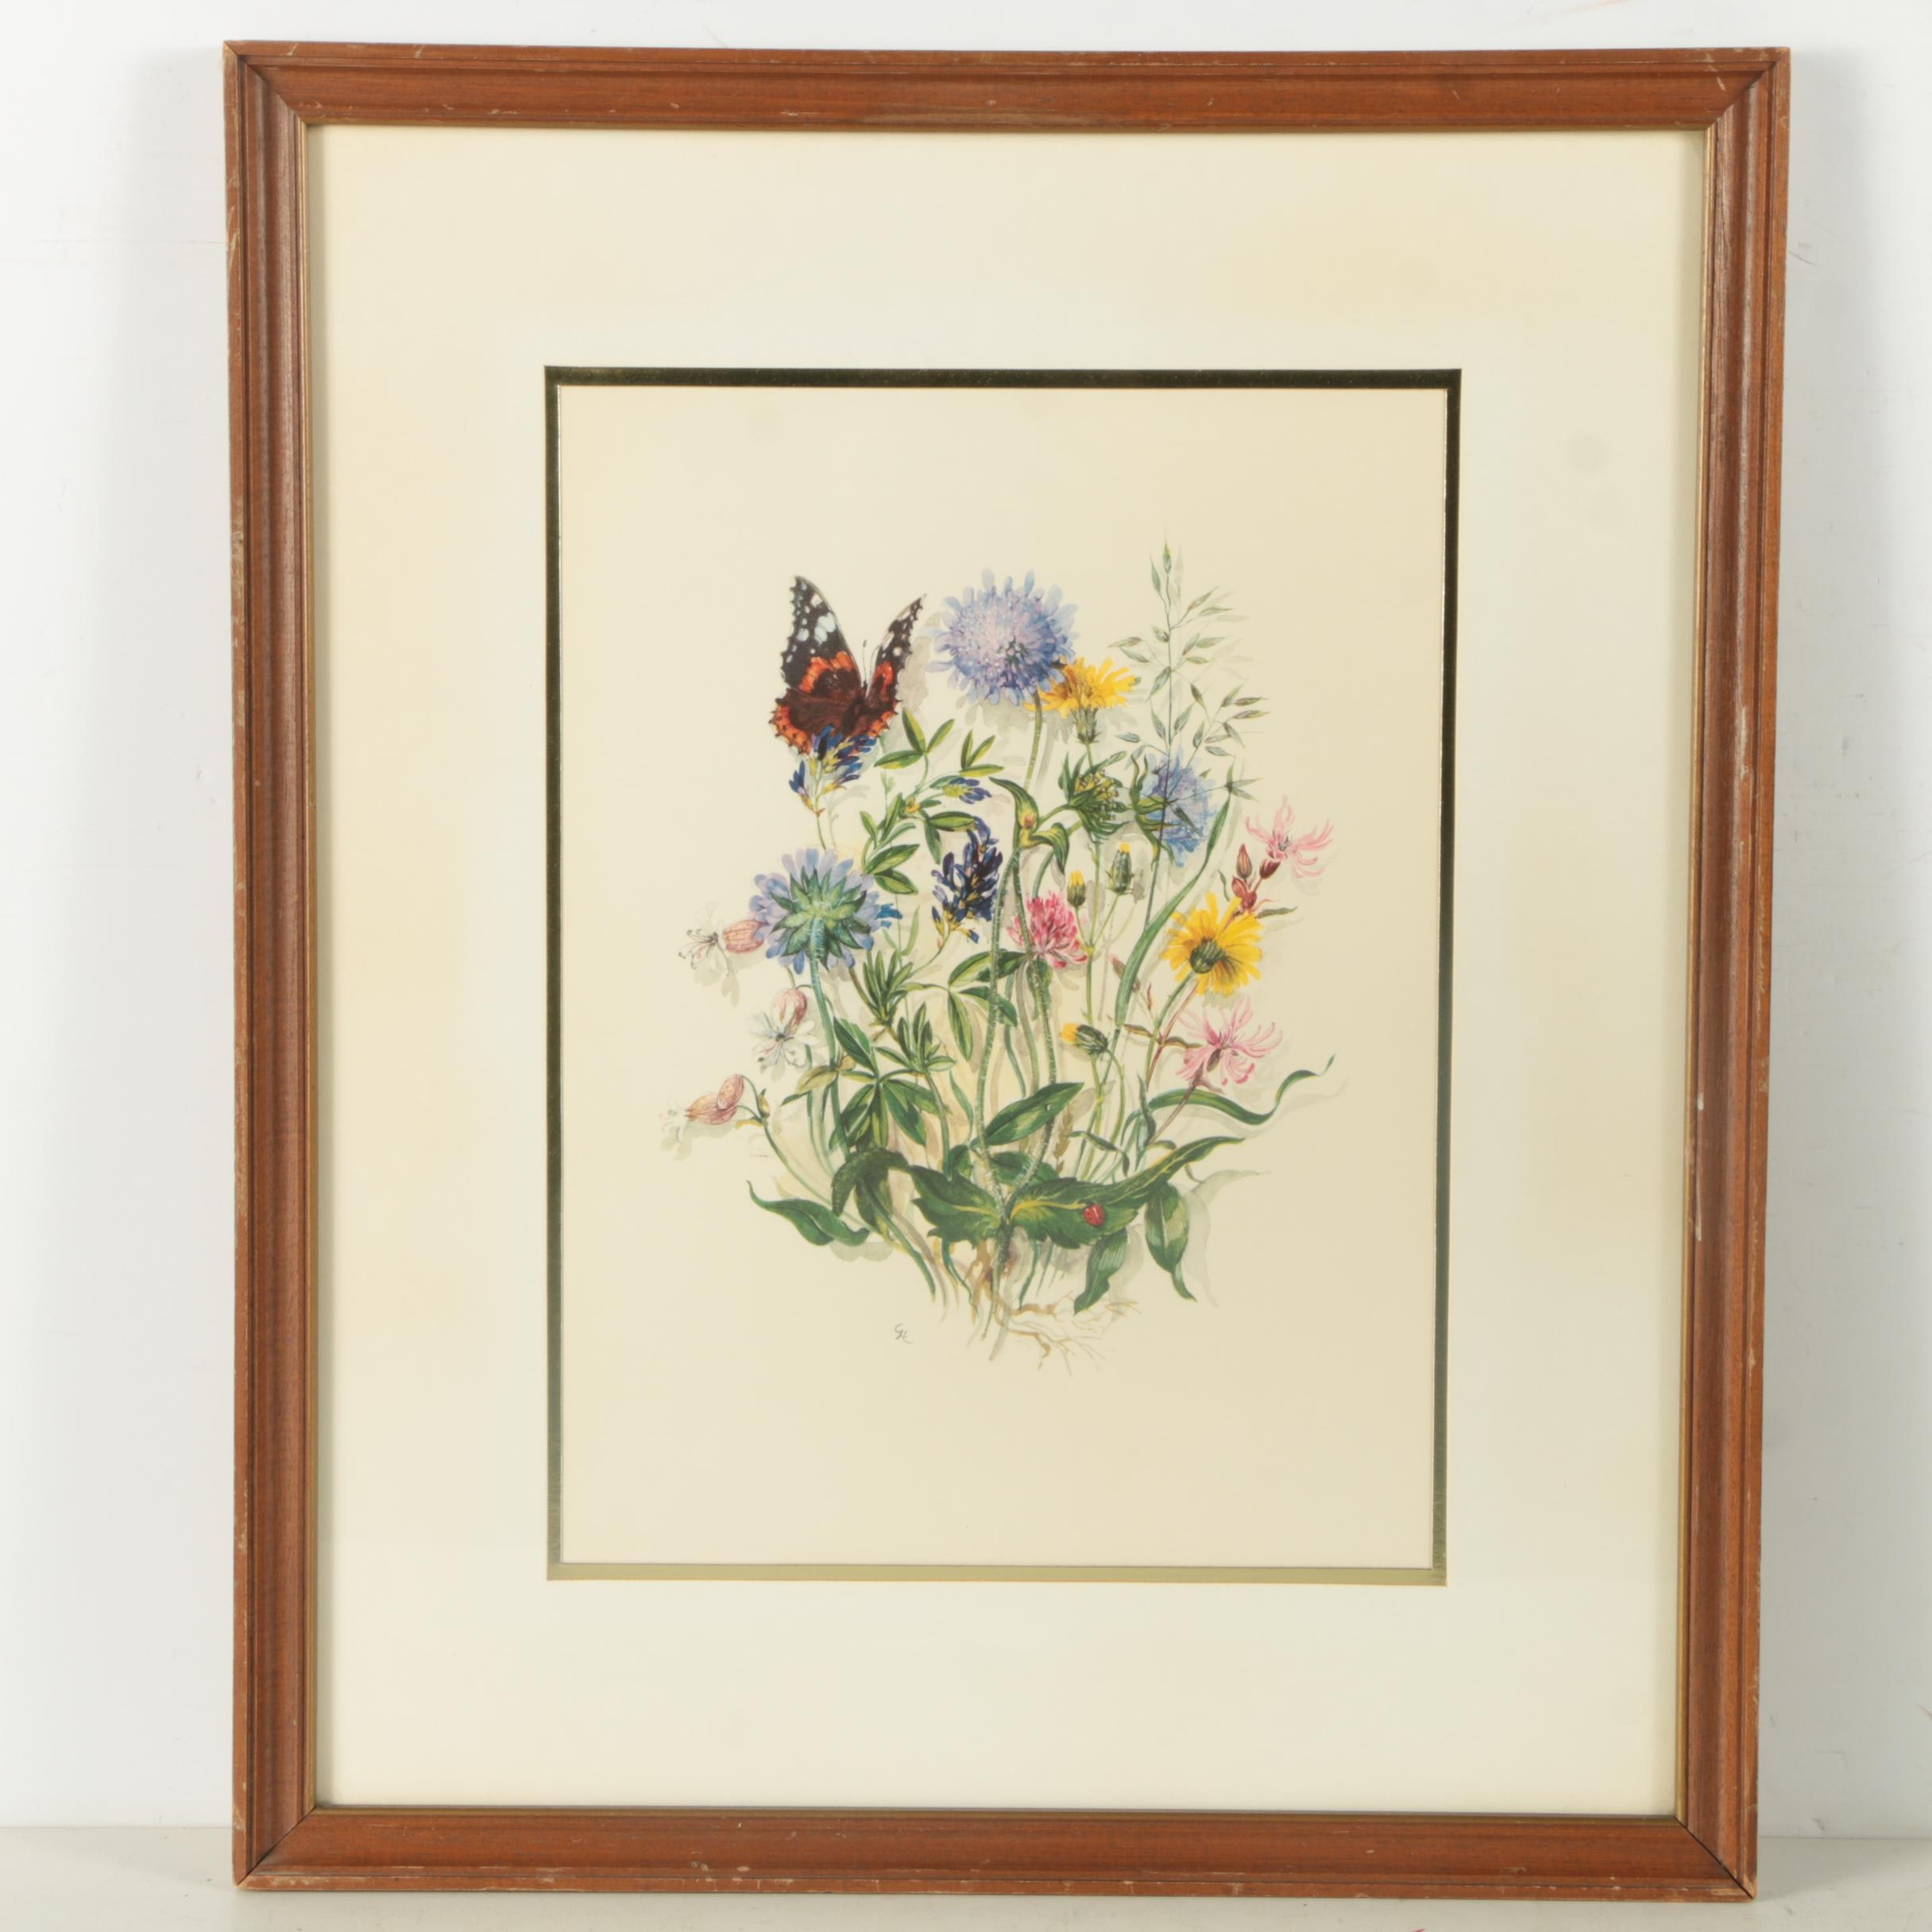 Offset Lithograph of Flowers and Insects